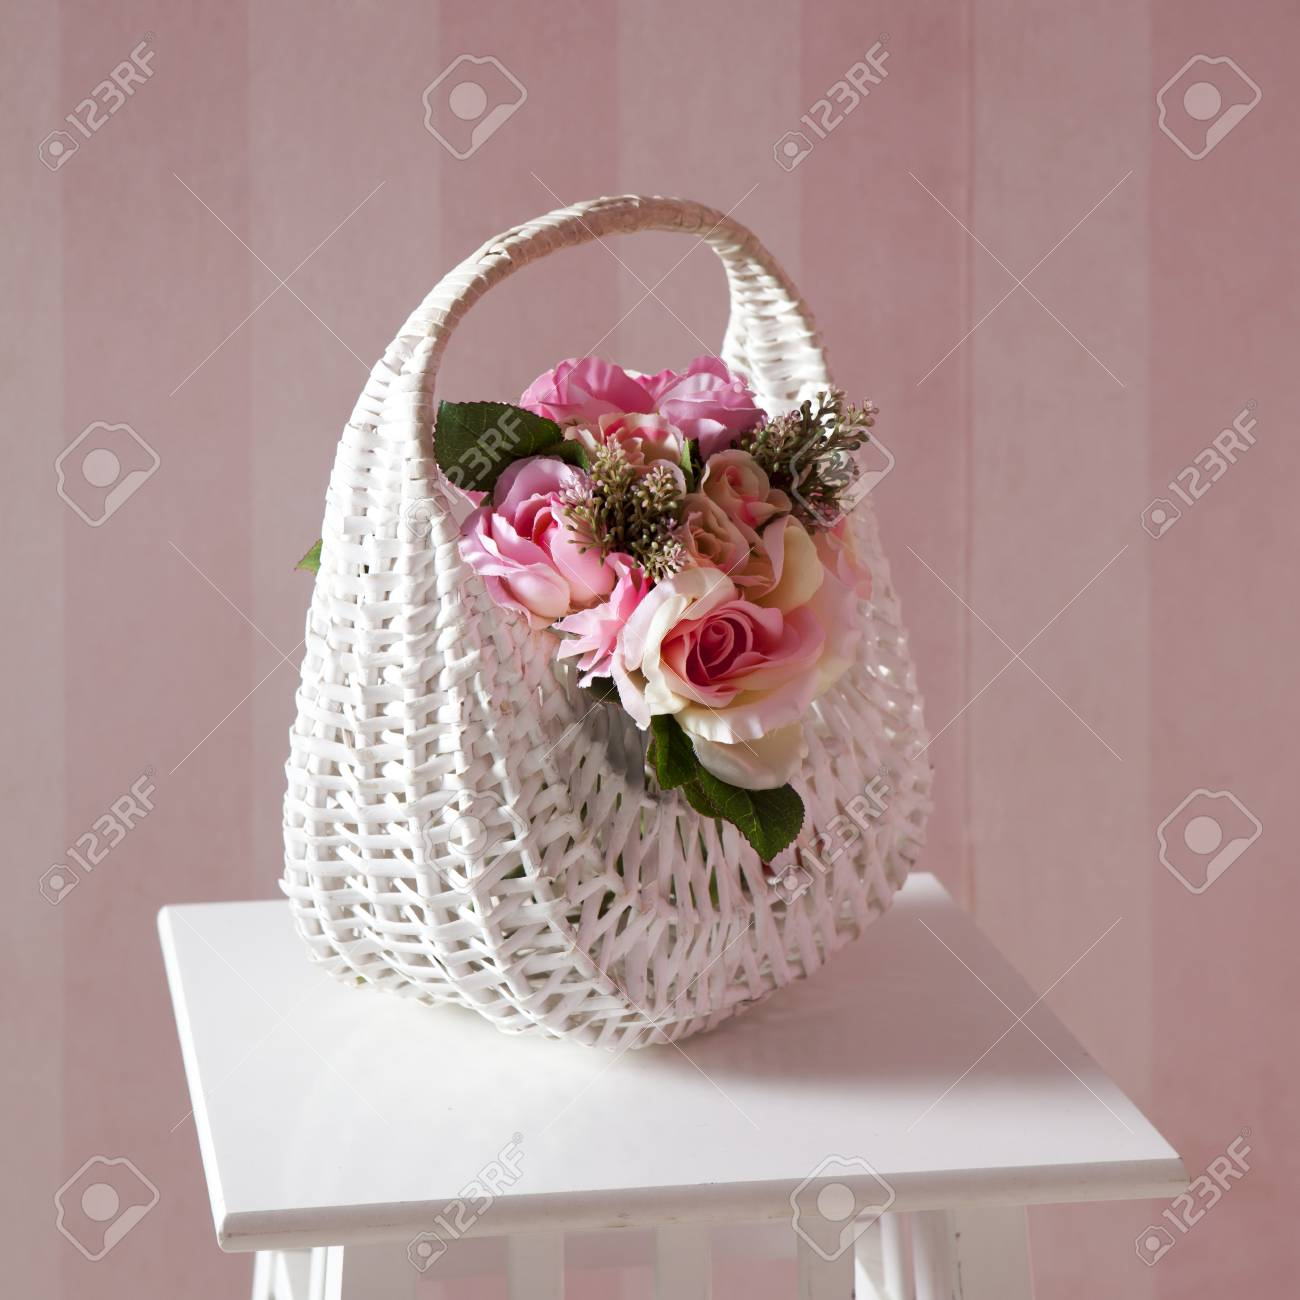 The handmade fake pink rose flower in the basket stock photo stock photo the handmade fake pink rose flower in the basket mightylinksfo